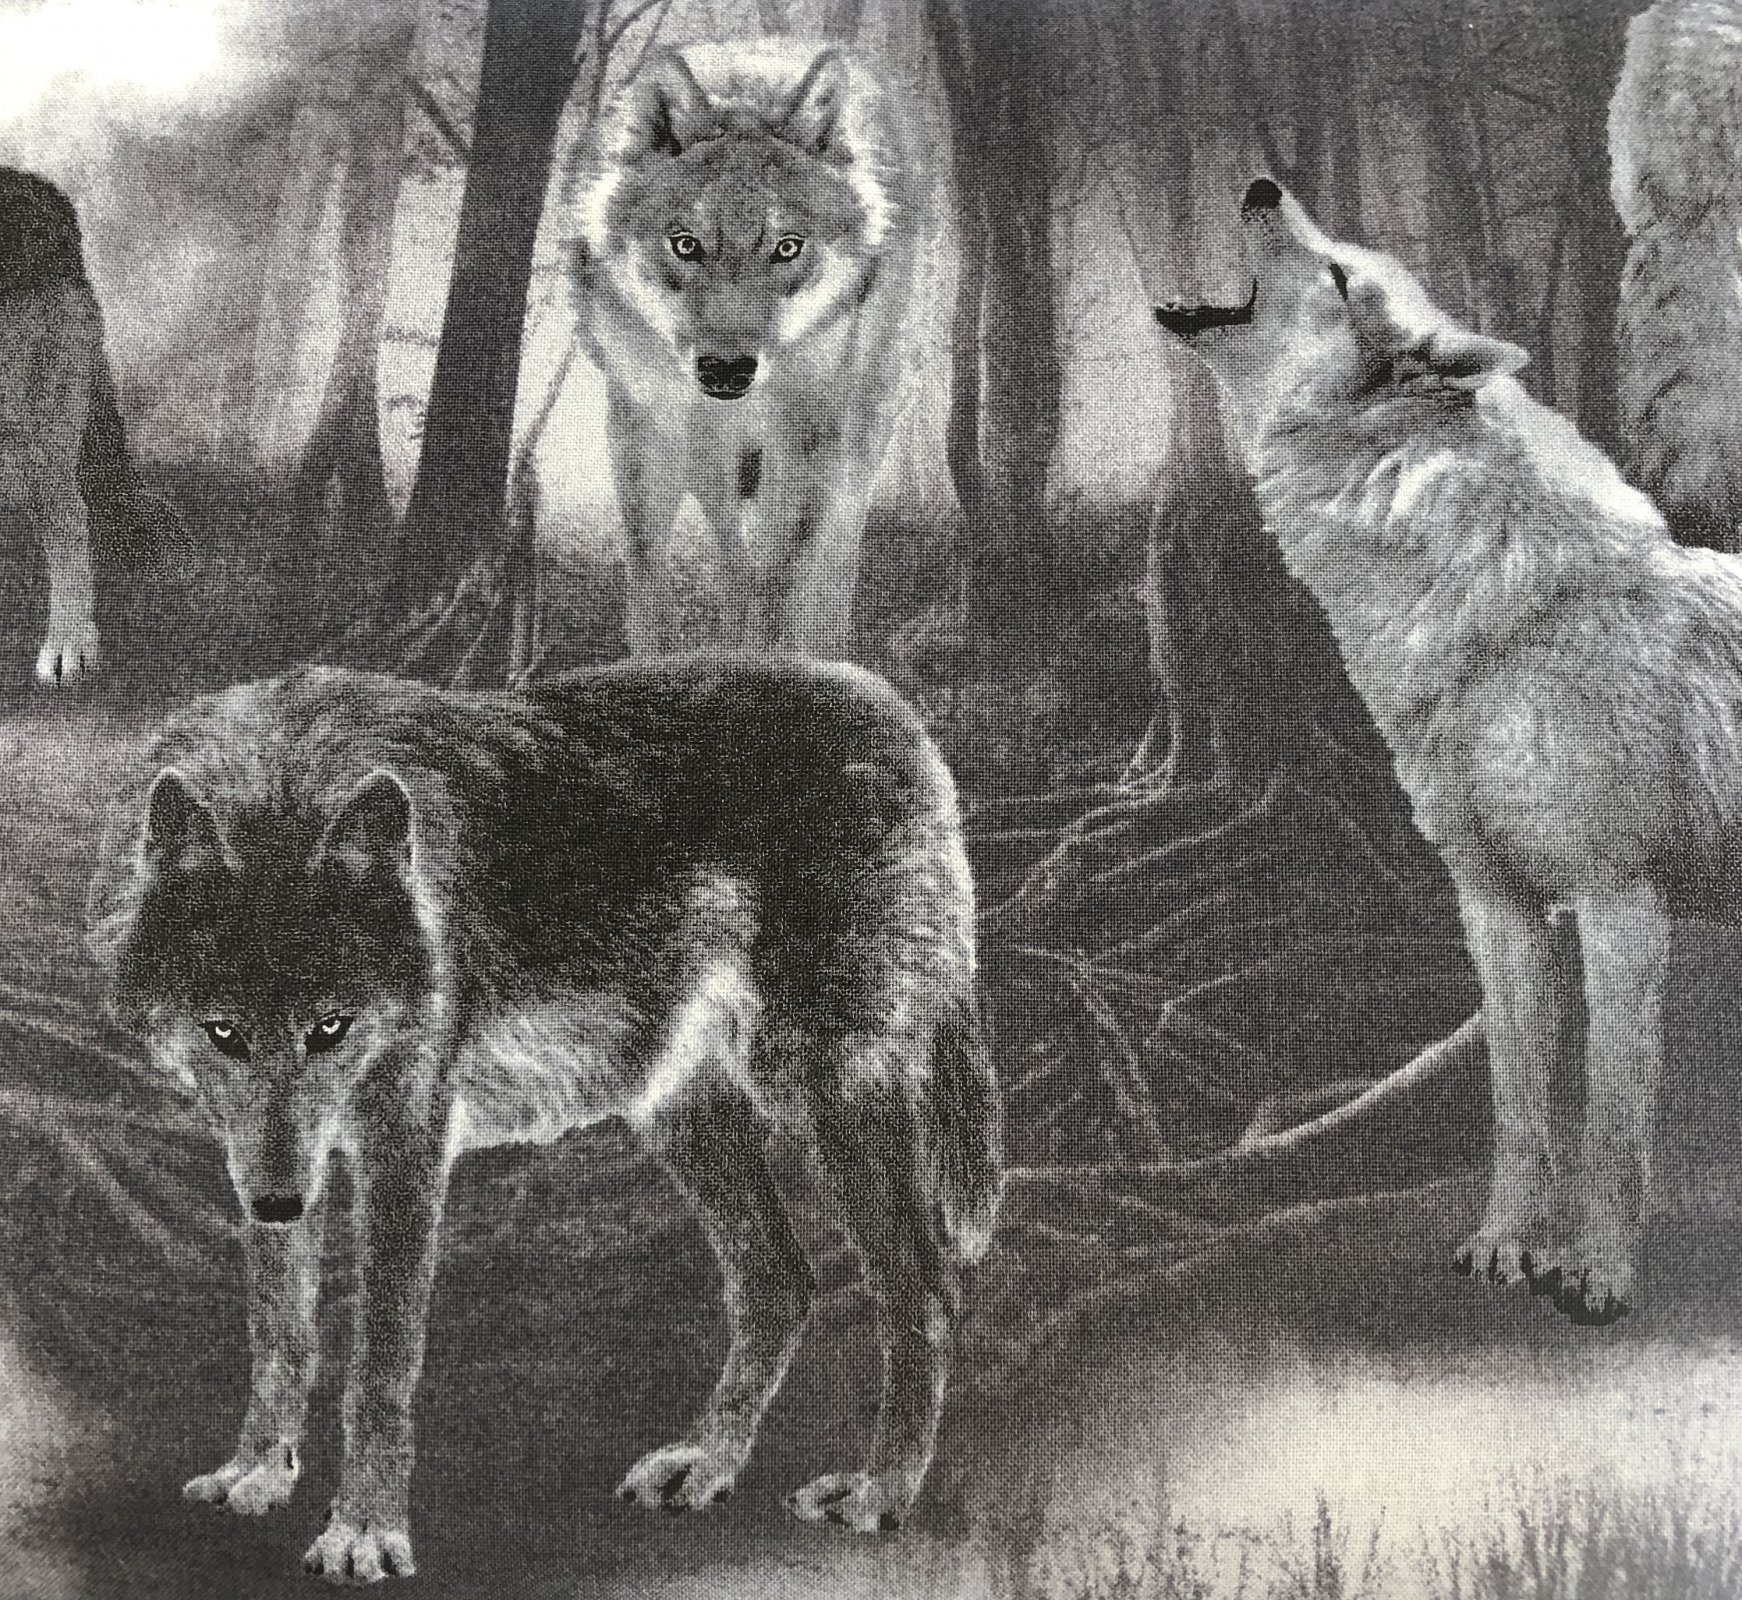 Wicked - Black Wolves